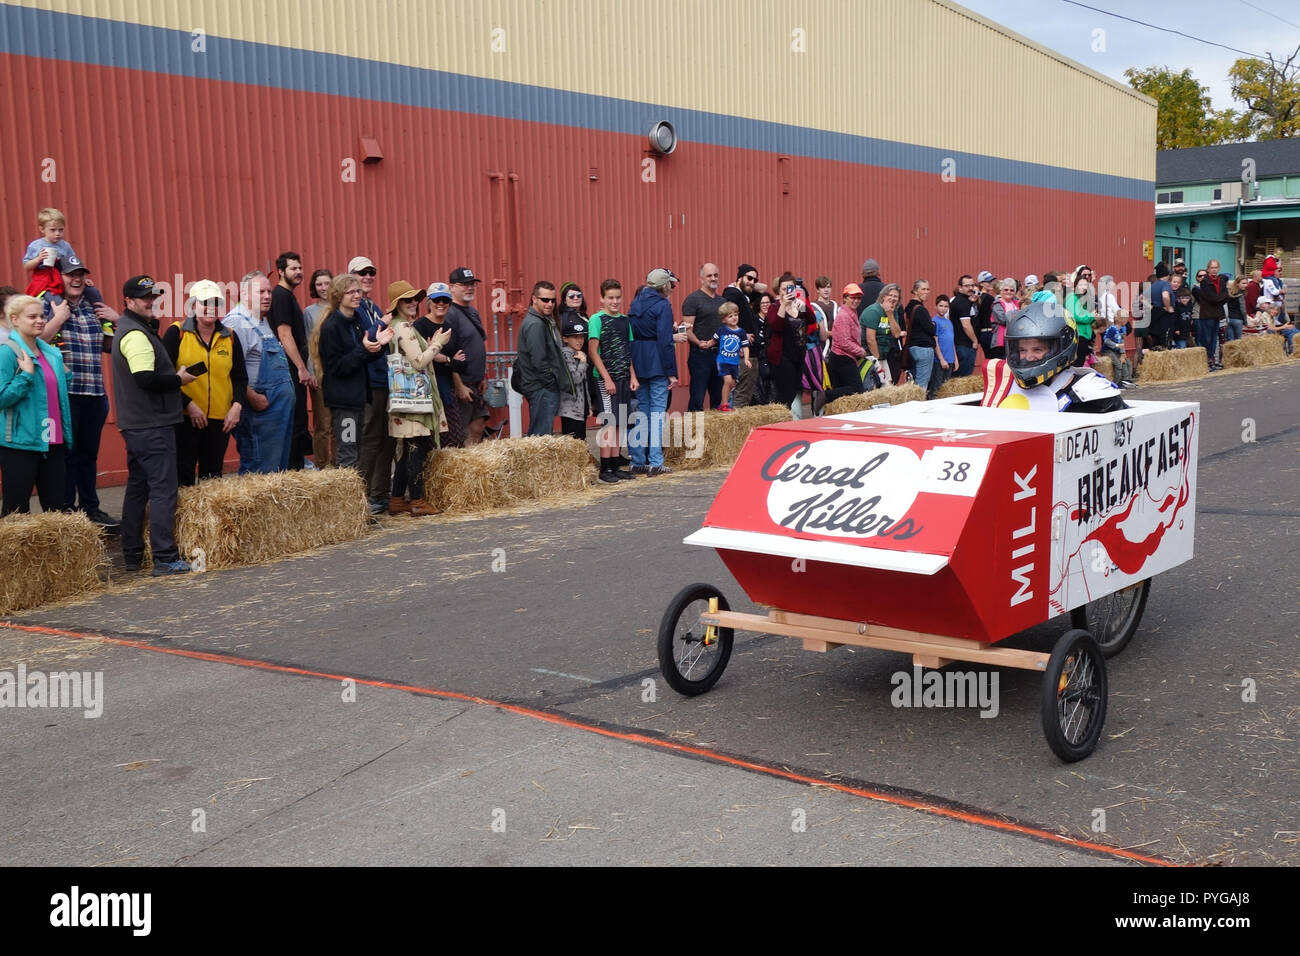 Eugene, Oregon, USA. 27th October, 2018. Racers compete in the Coffin Races, a Halloween-themed soapbox derby in Eugene, Oregon. Copyright: Gina Kelly/Alamy Live News - Stock Image